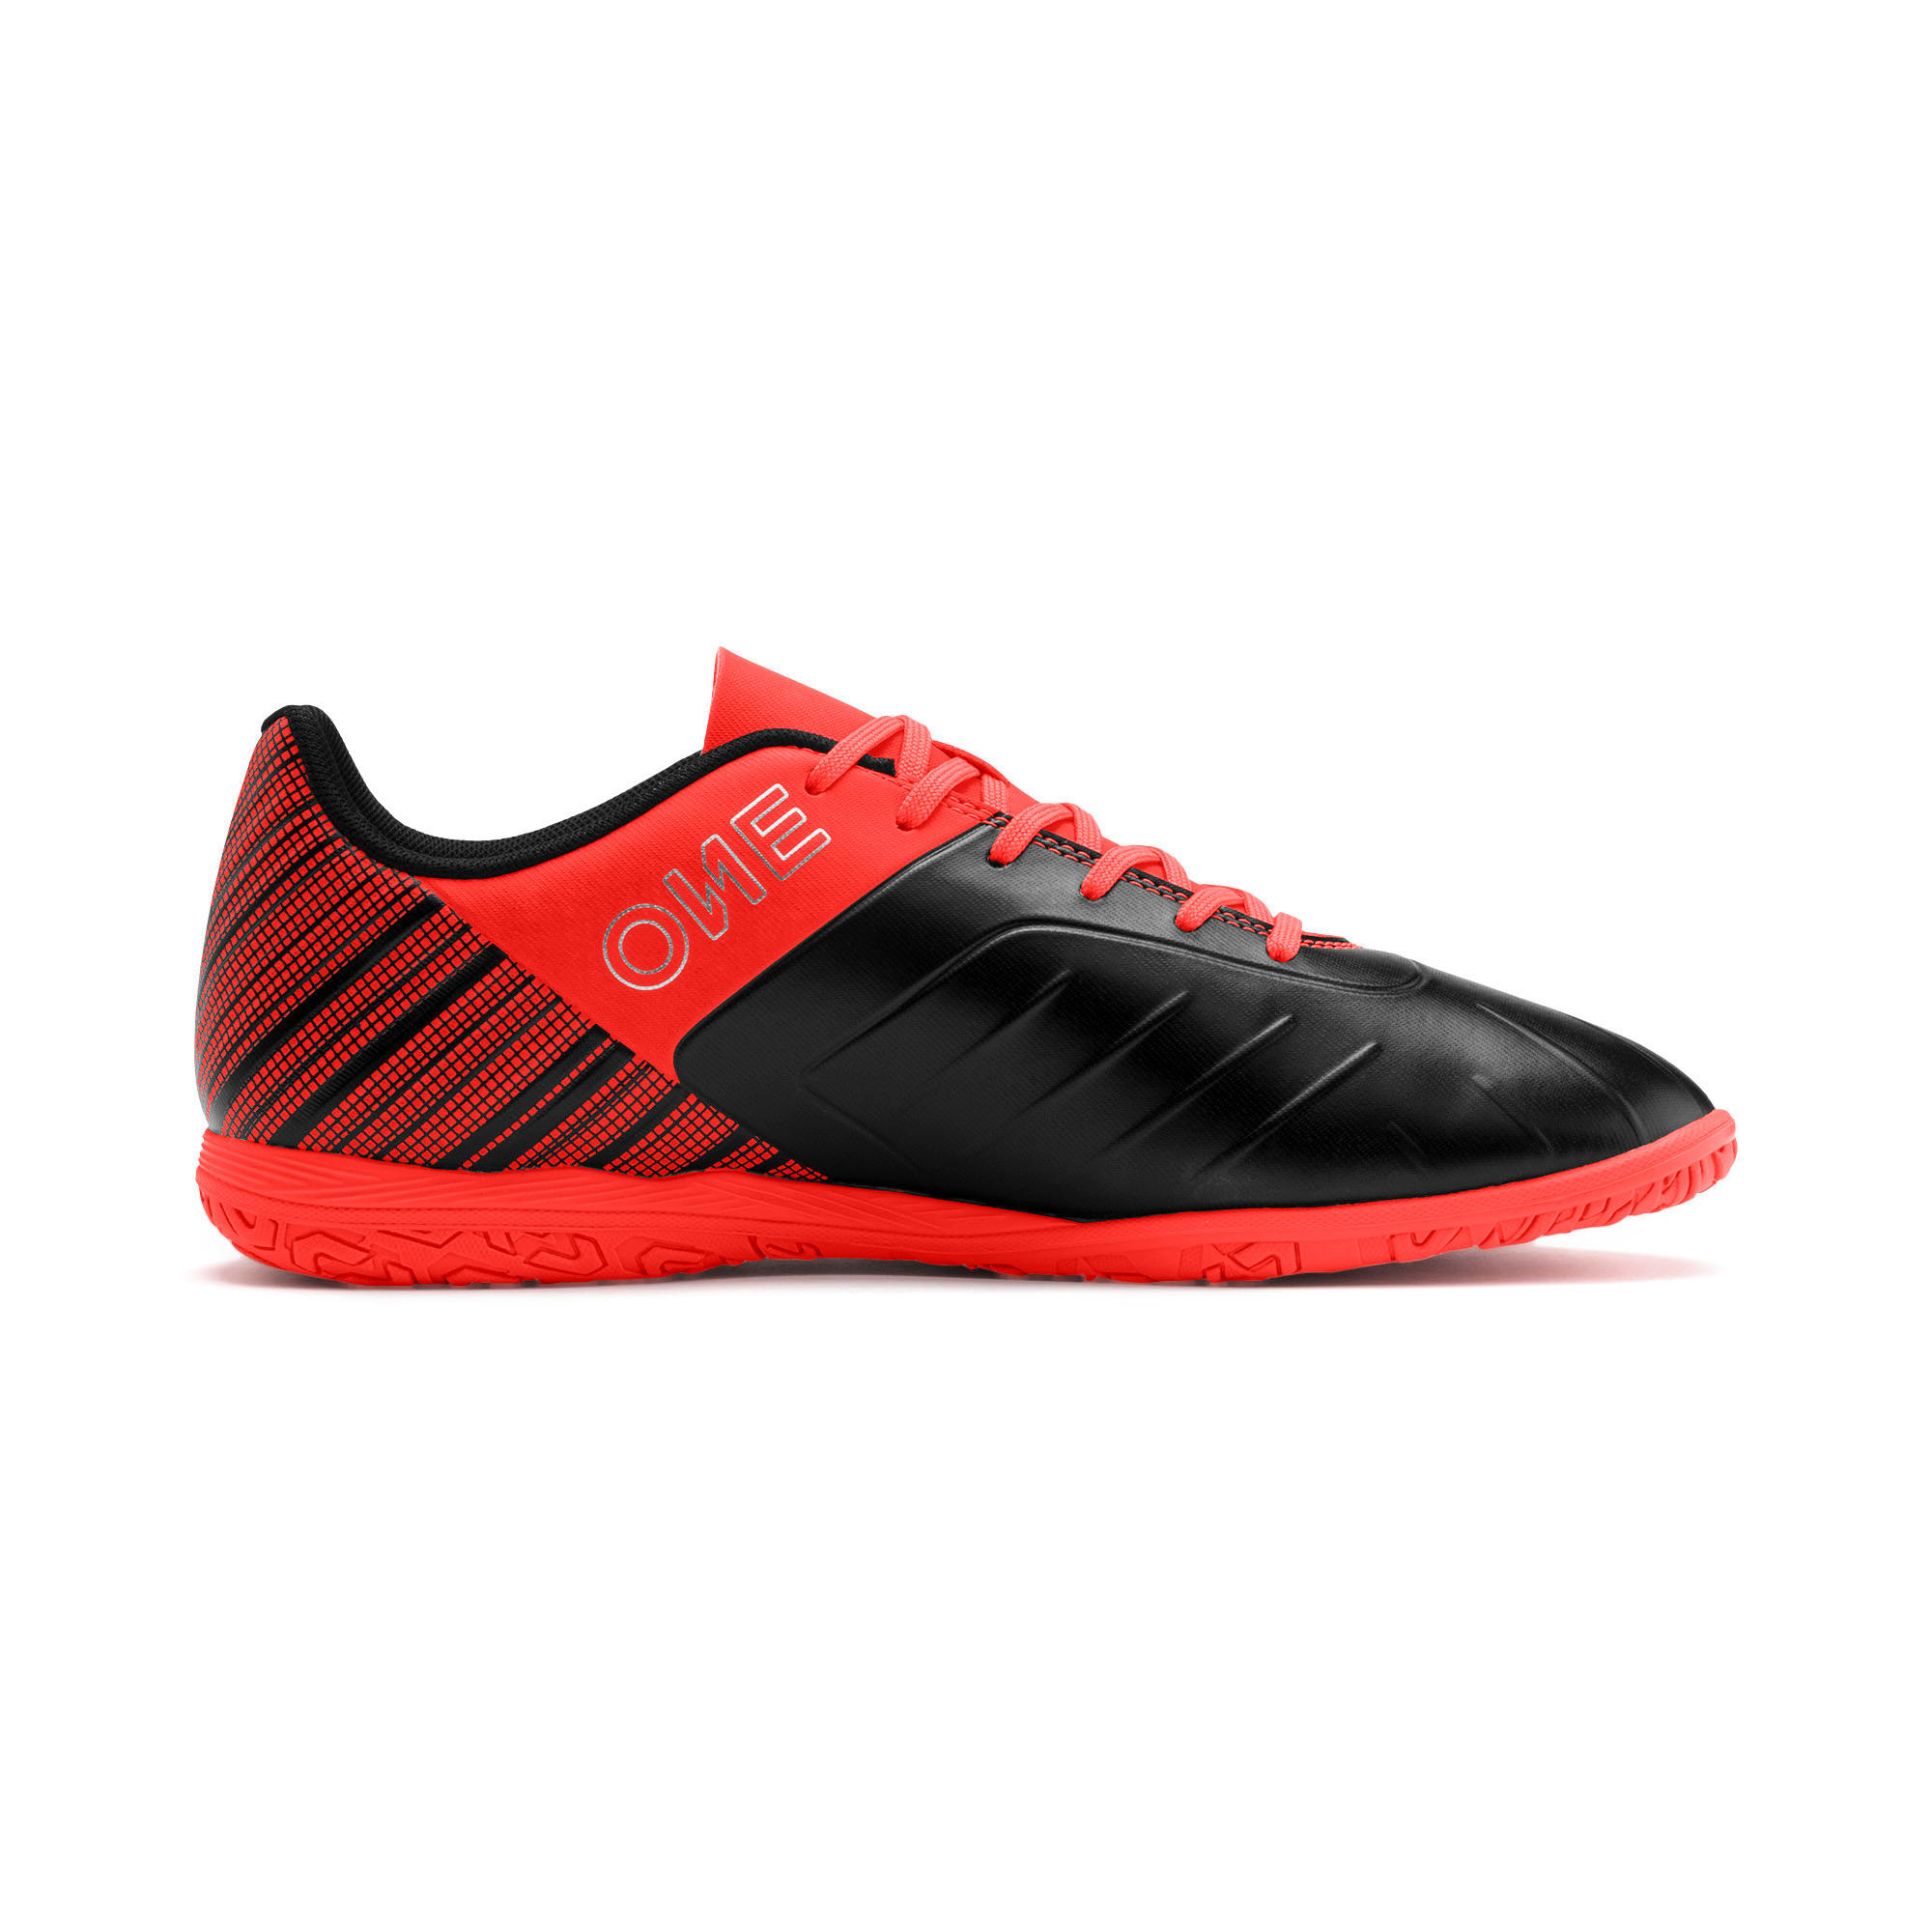 Thumbnail 6 of PUMA ONE 5.4 IT Men's Football Boots, Black-Nrgy Red-Aged Silver, medium